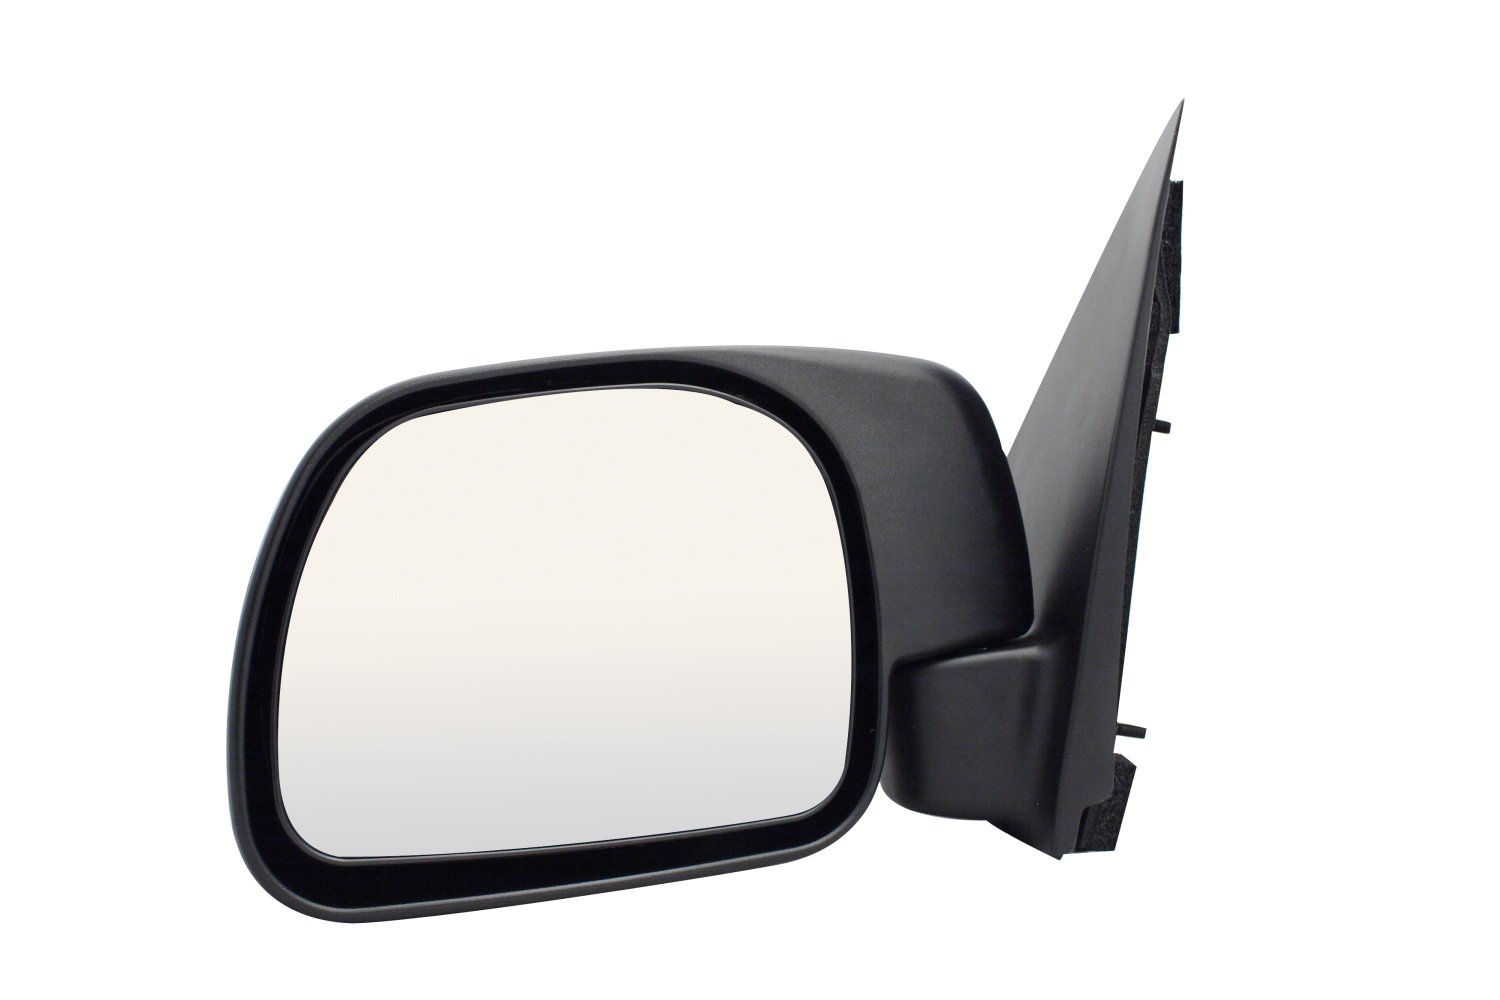 Pilot FD9119410-2L00 Ford Excursion Black Manual Replacement Driver Side Mirror